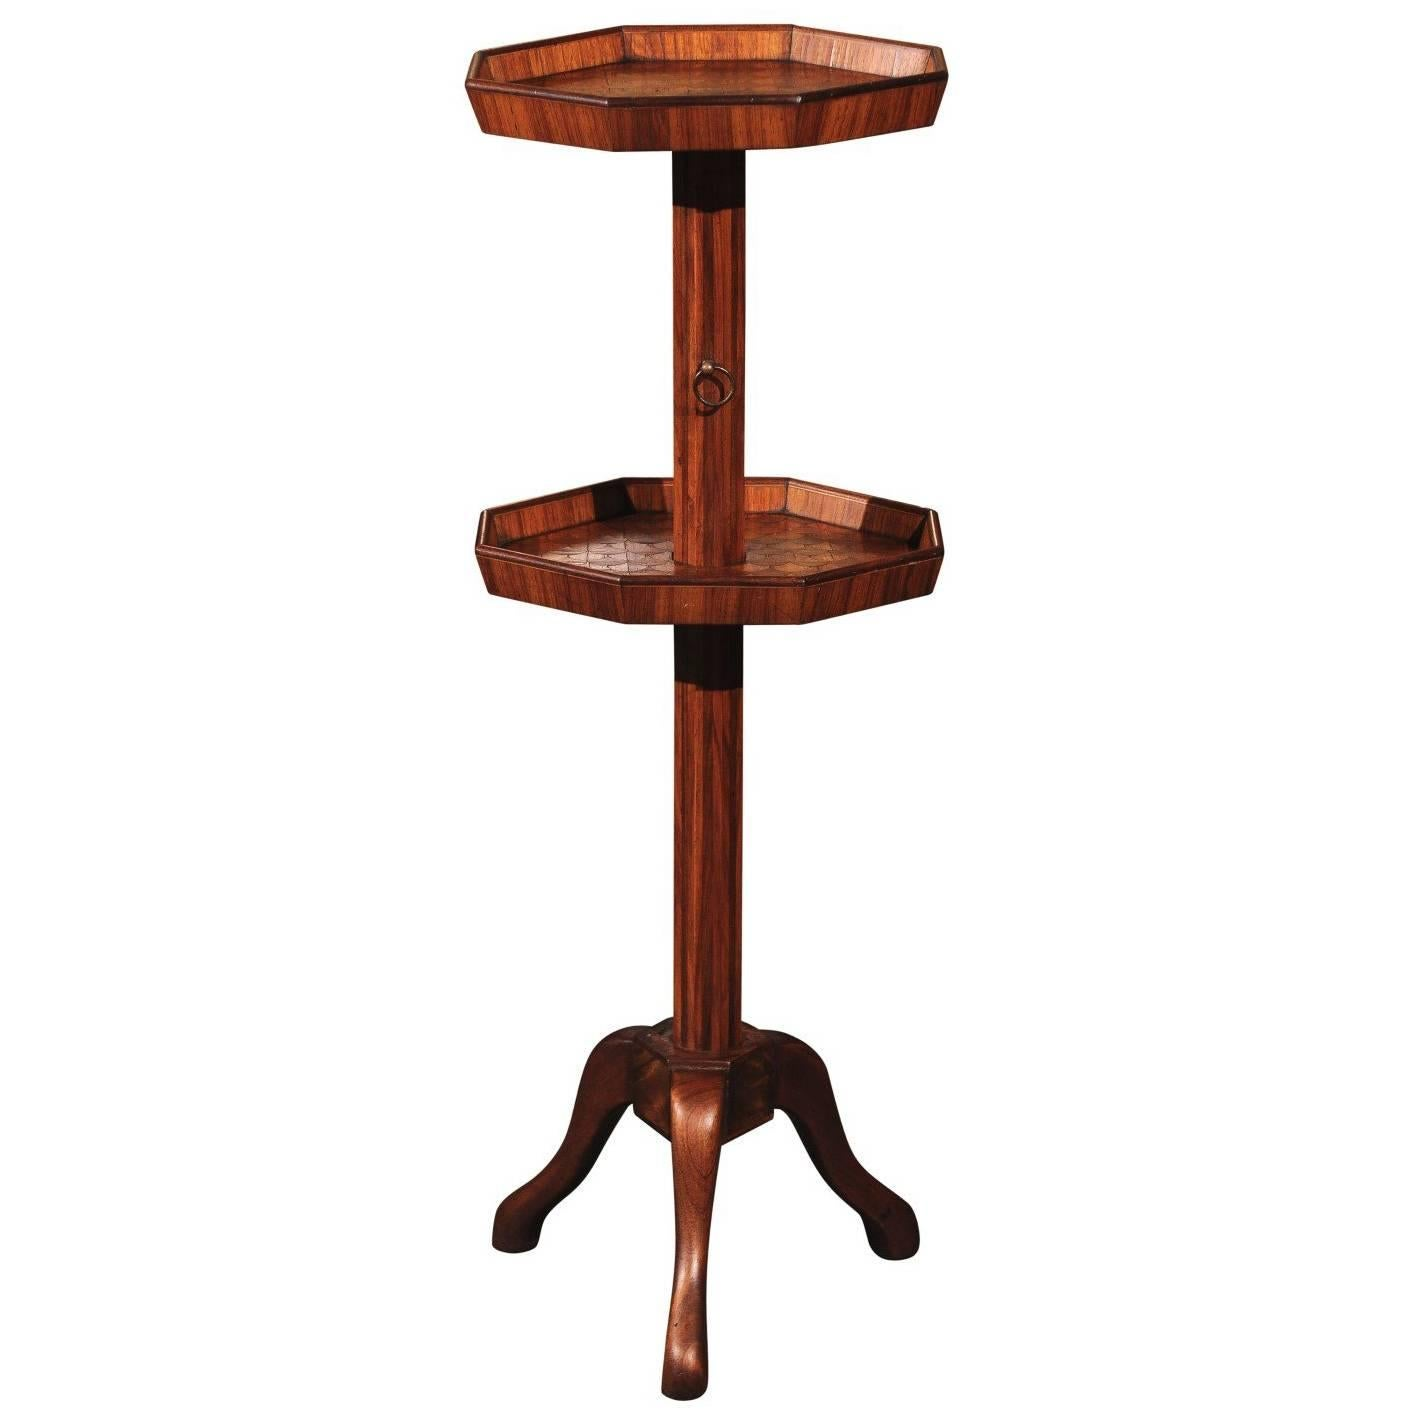 Adjustable French Wooden Dumb Waiter/Pedestal Stand from the Late 19th Century